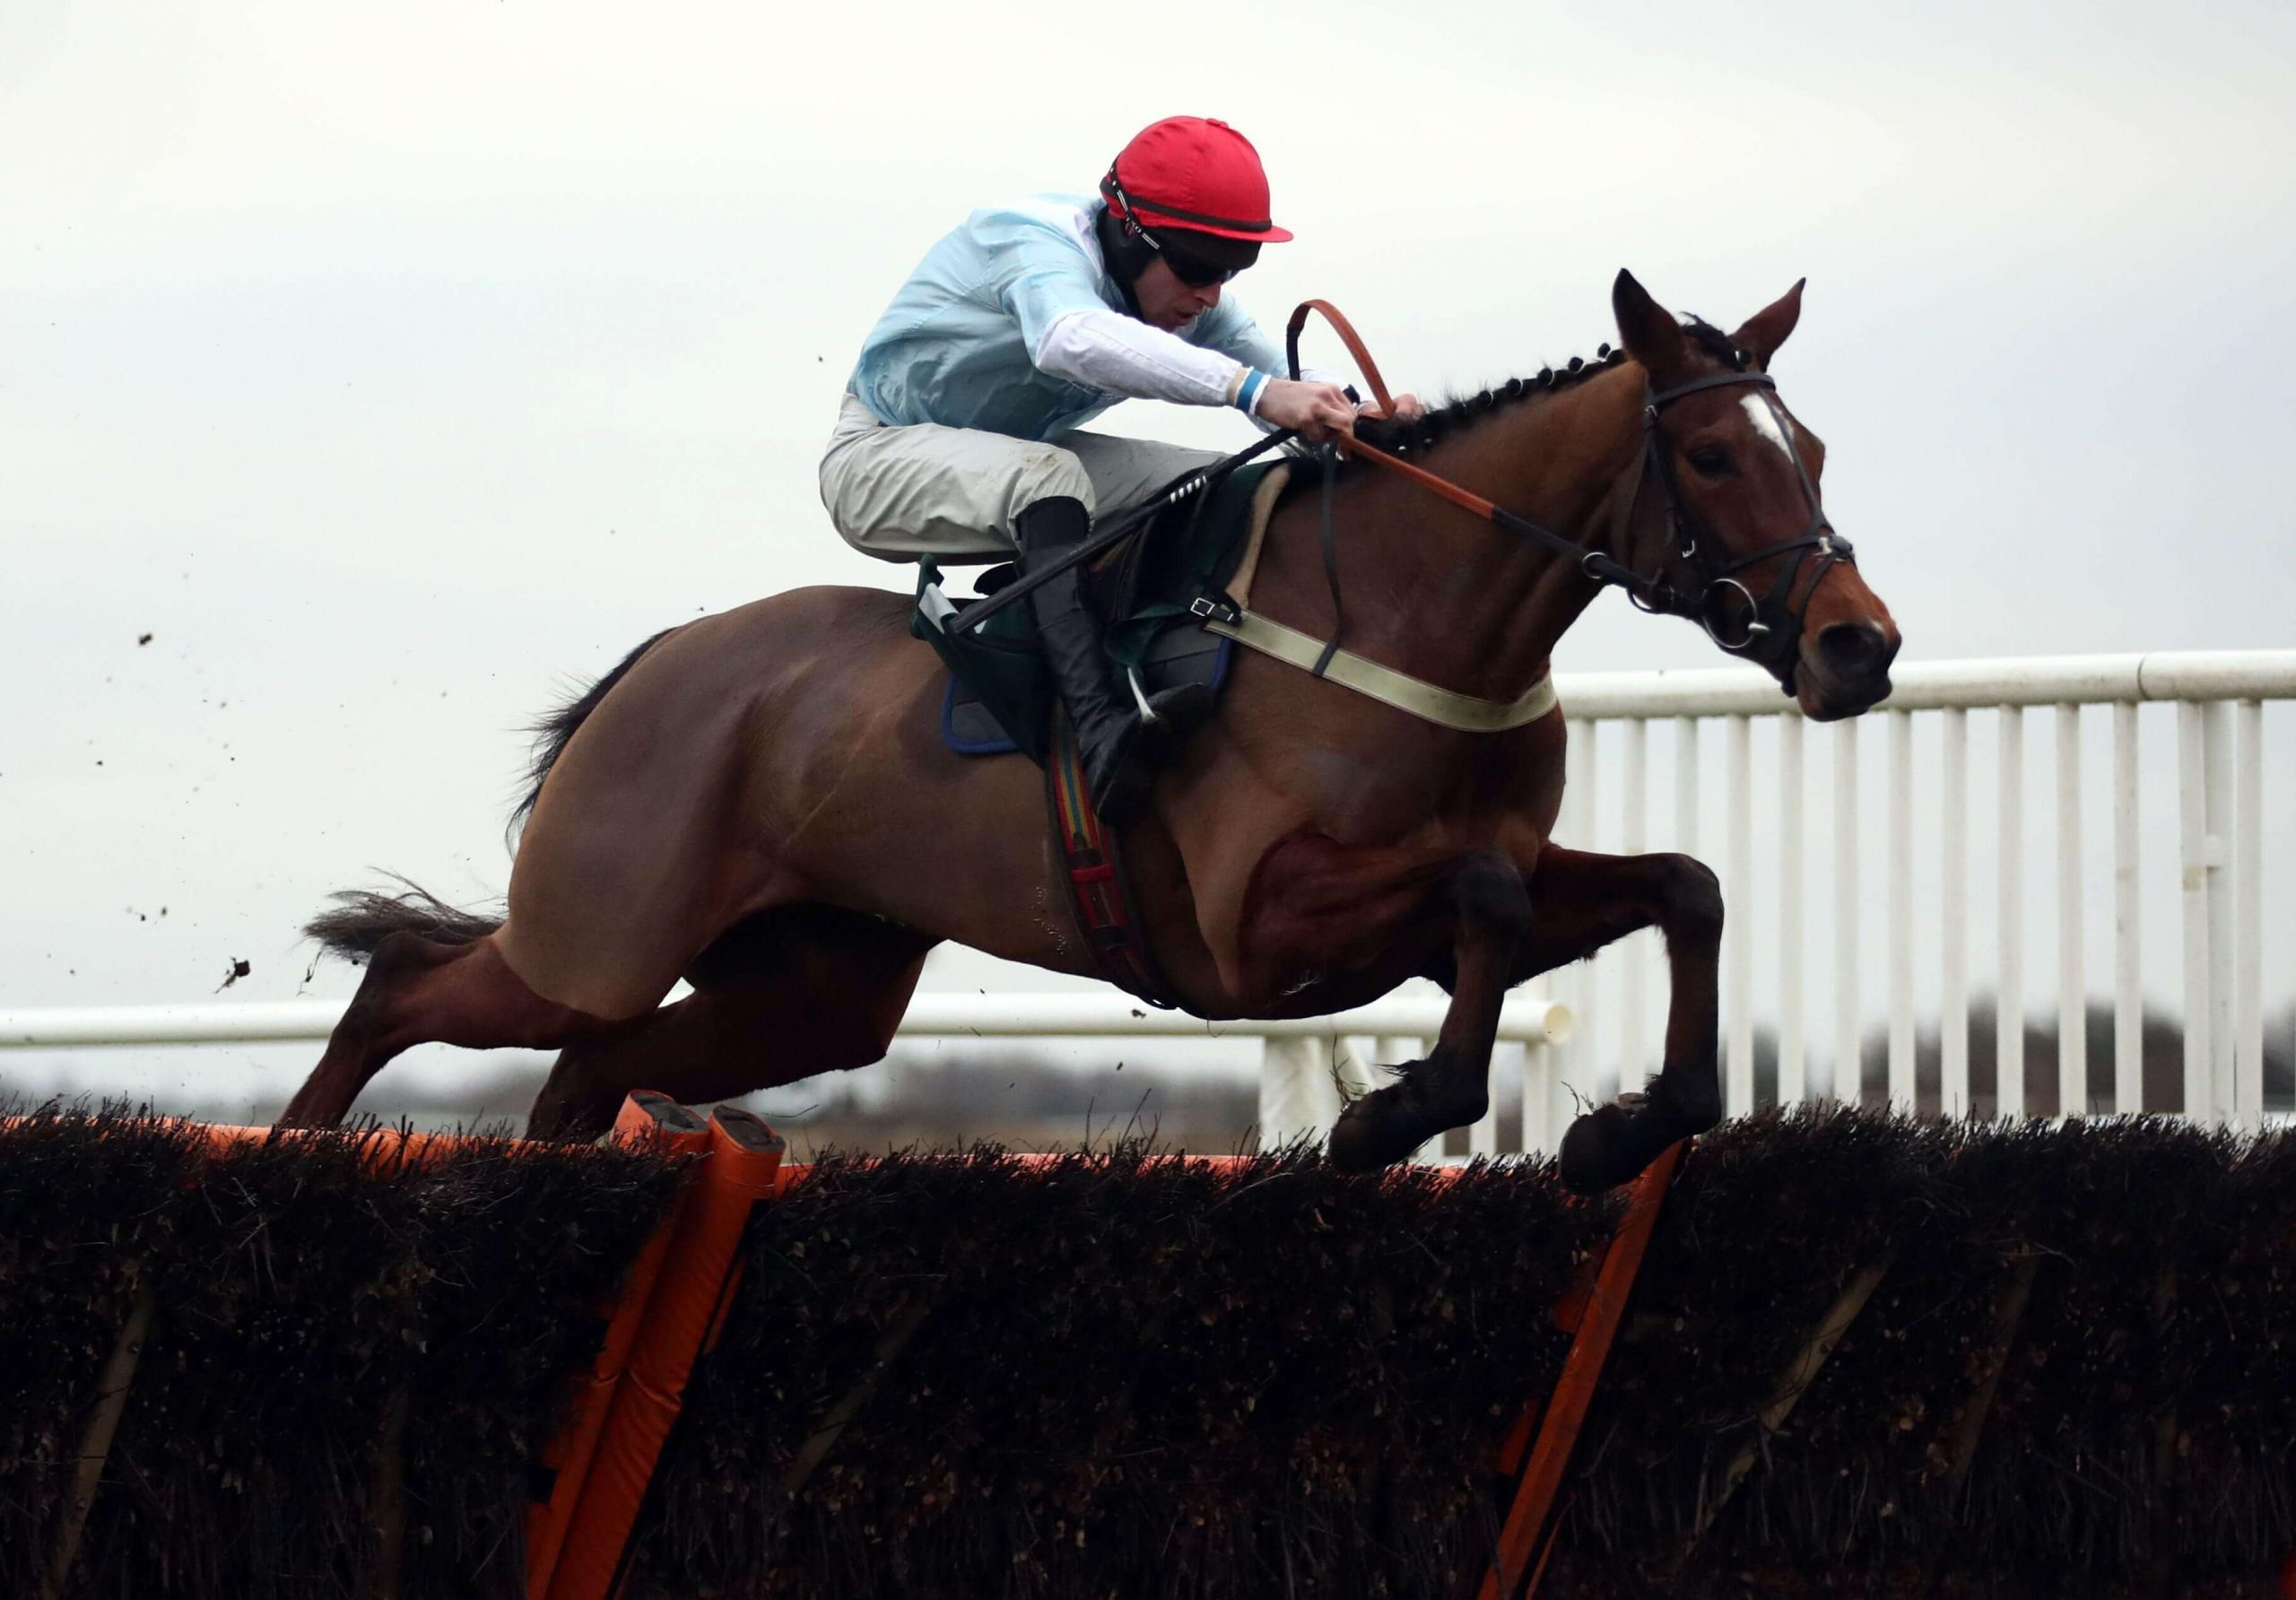 Anythingforlove, trained by Jamie Snowden, winning at Catterick Racecourse under Gavin Sheehan